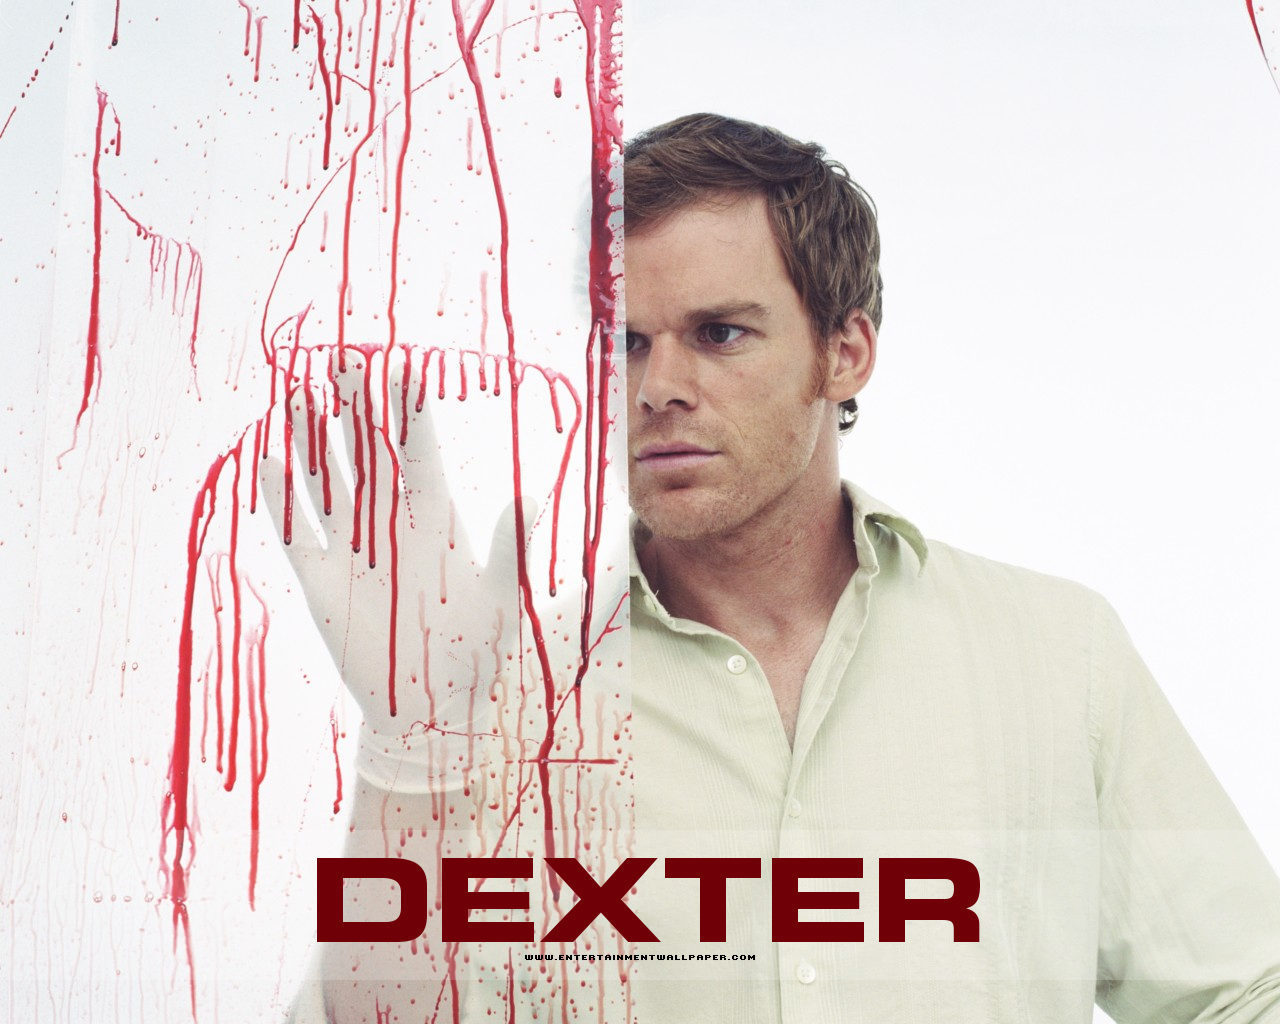 Dexter Morgan Dexter Wallpaper 8264793 Fanpop